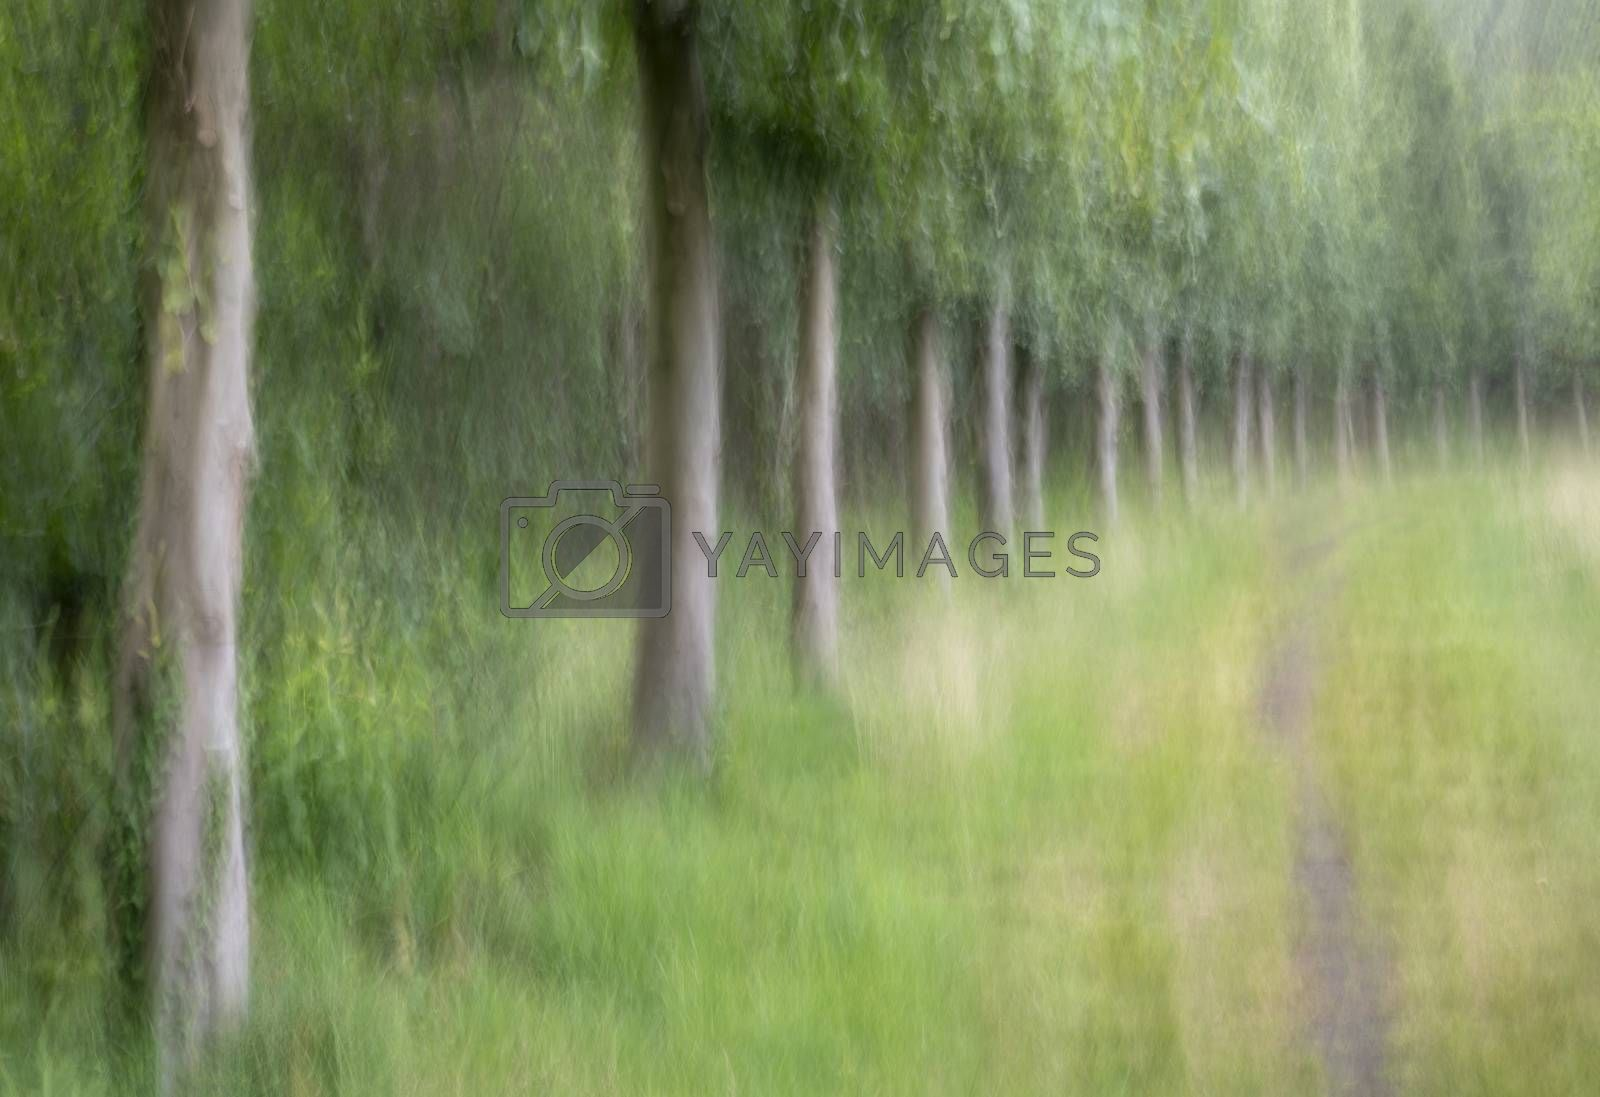 Abstract trees in a forest  by Tofotografie